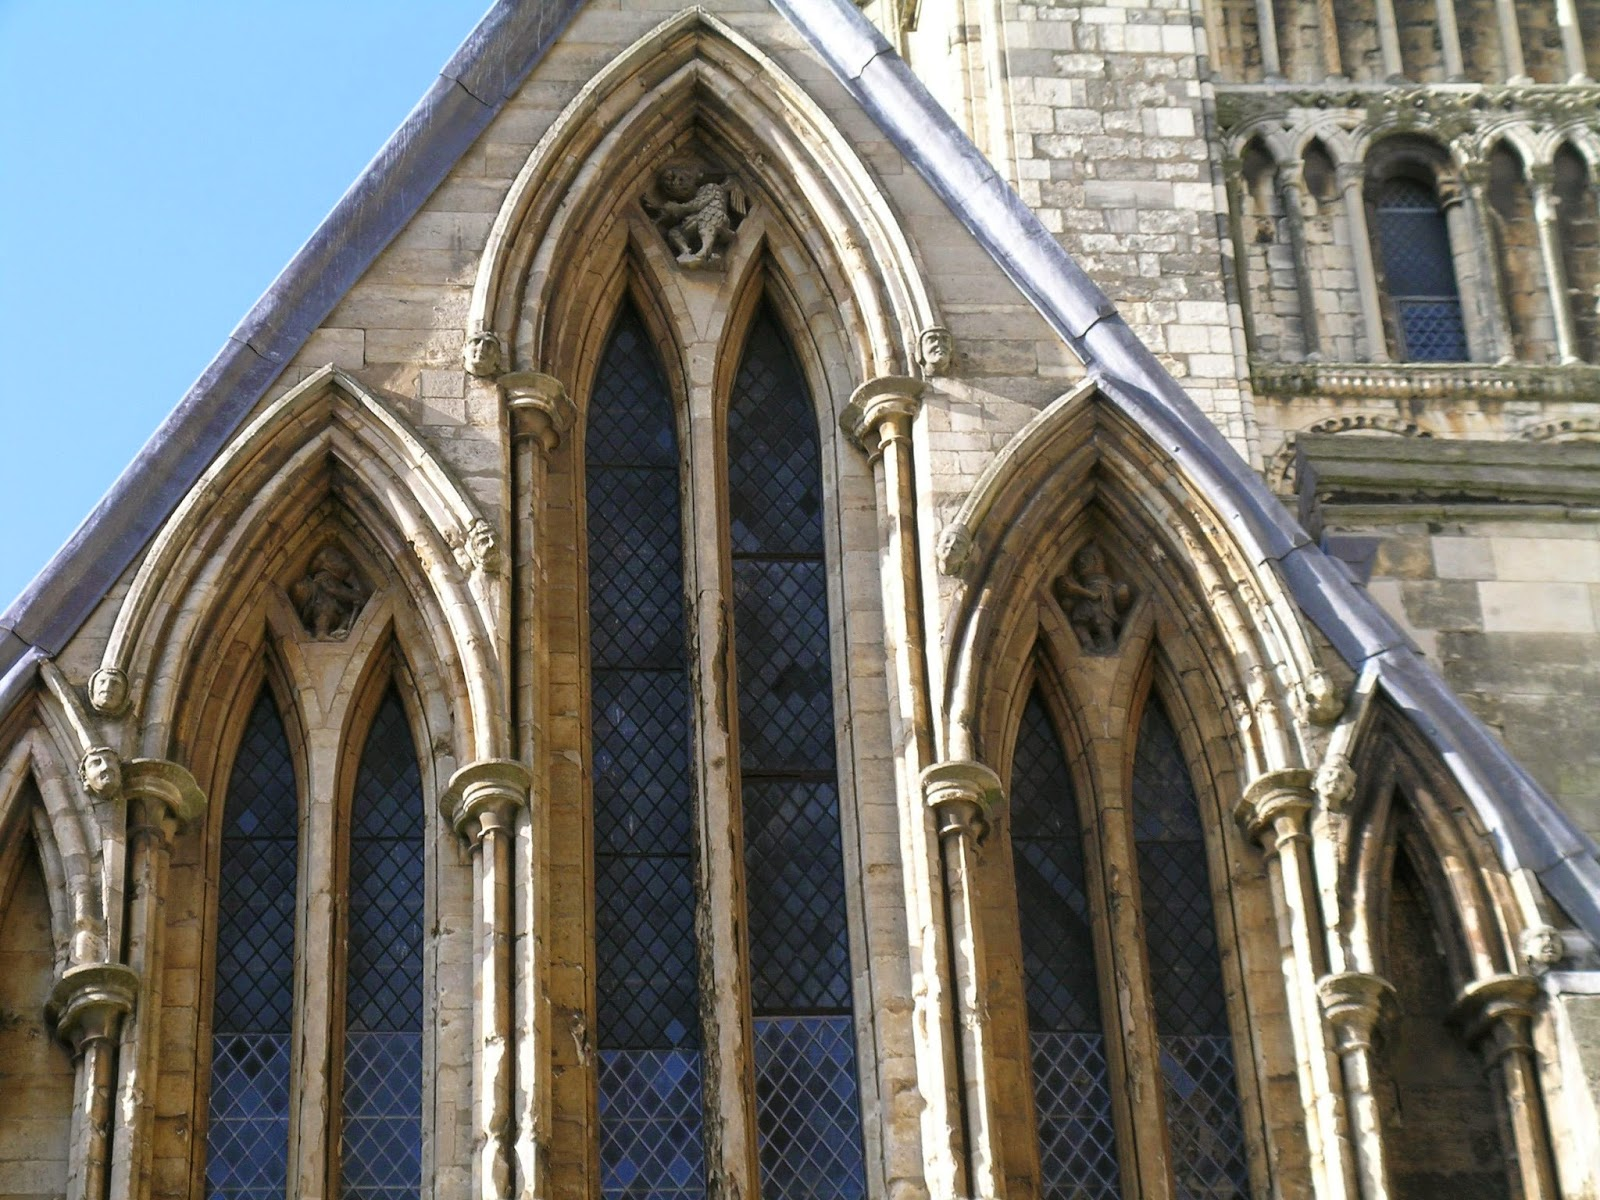 Gothic Horror: Gothic Horror in Literature and Architecture